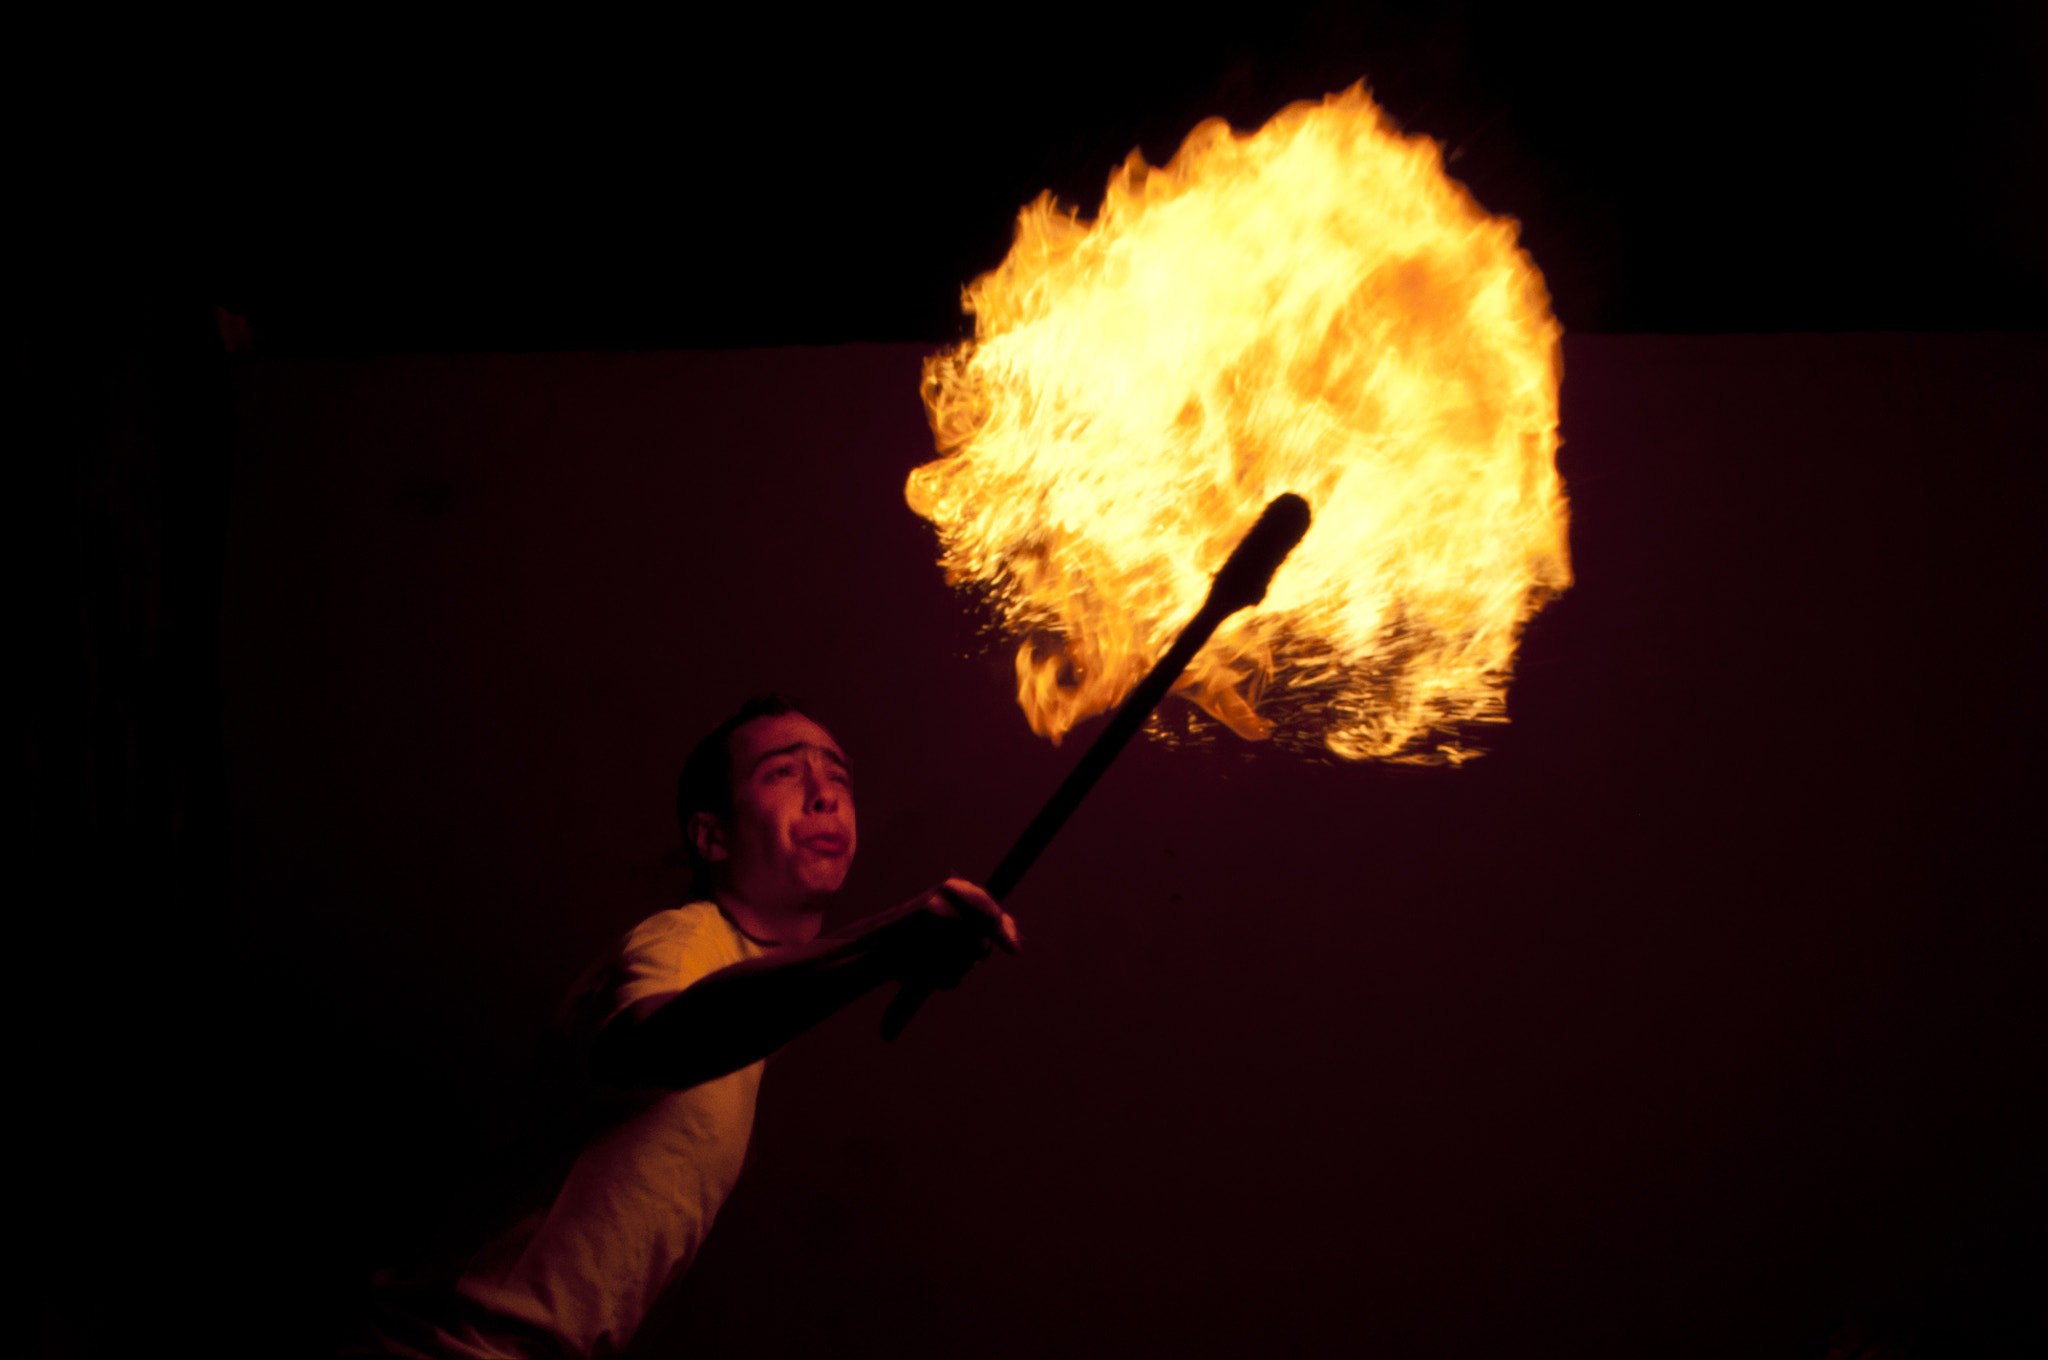 Photograph Simon spitting fire by Jorge  Torres on 500px